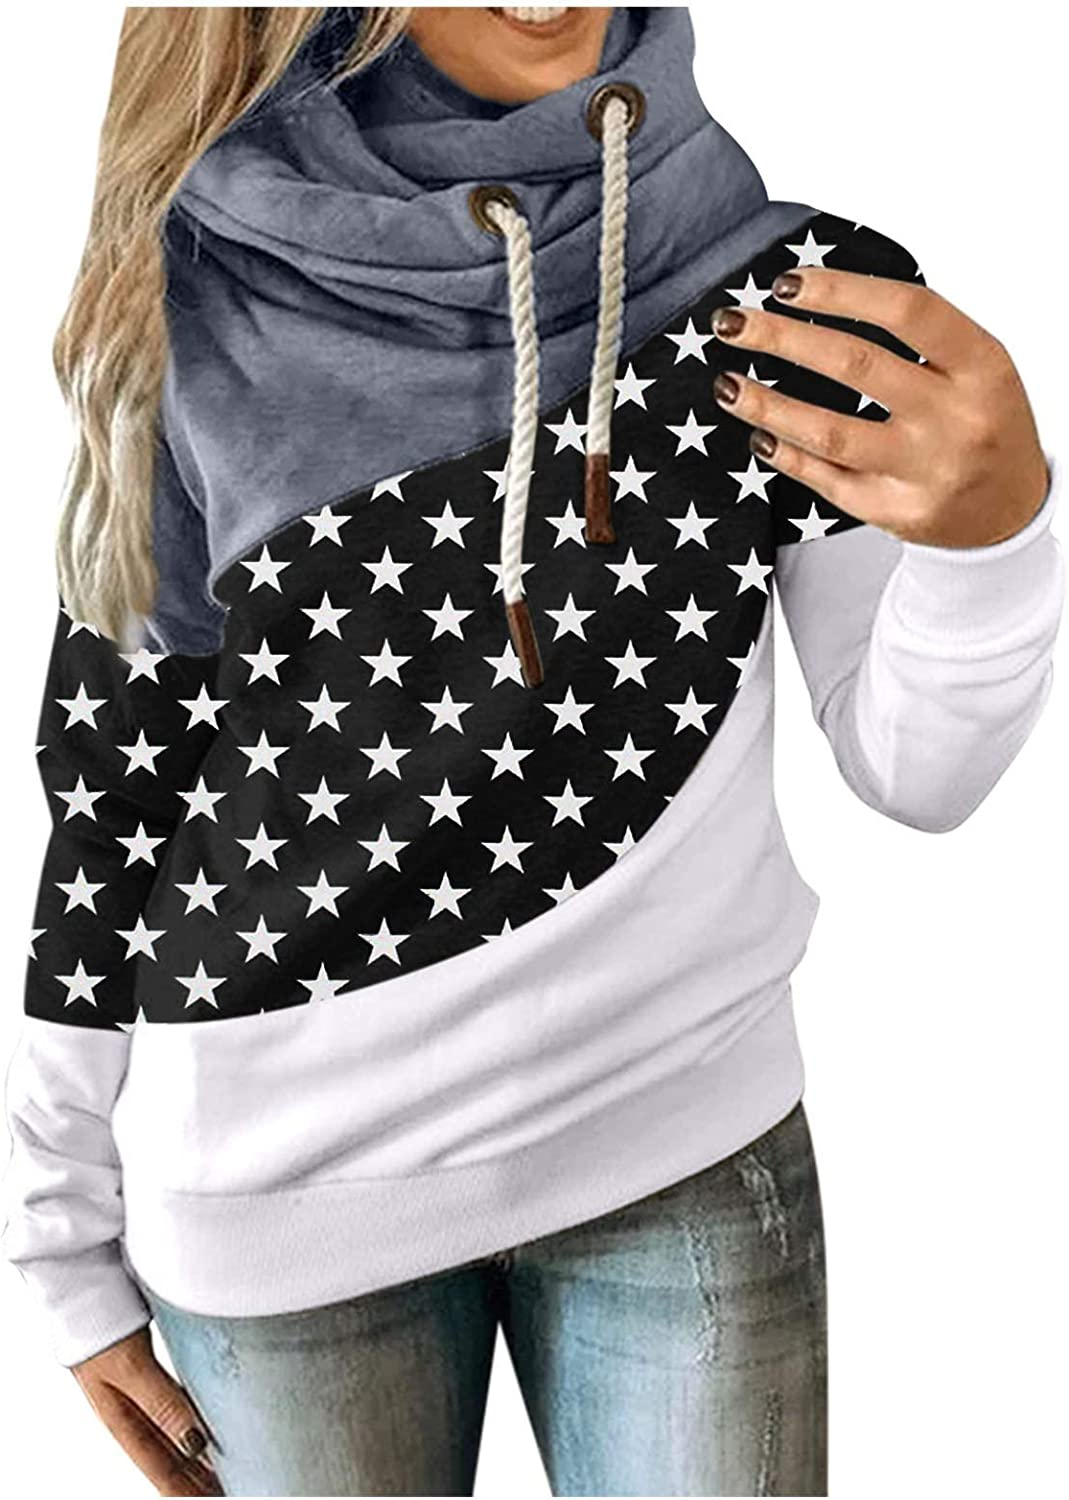 Hotkey Women Autumn Winter ! Super beauty product restock quality top! Hoodies Printing Stars Color latest Contrast